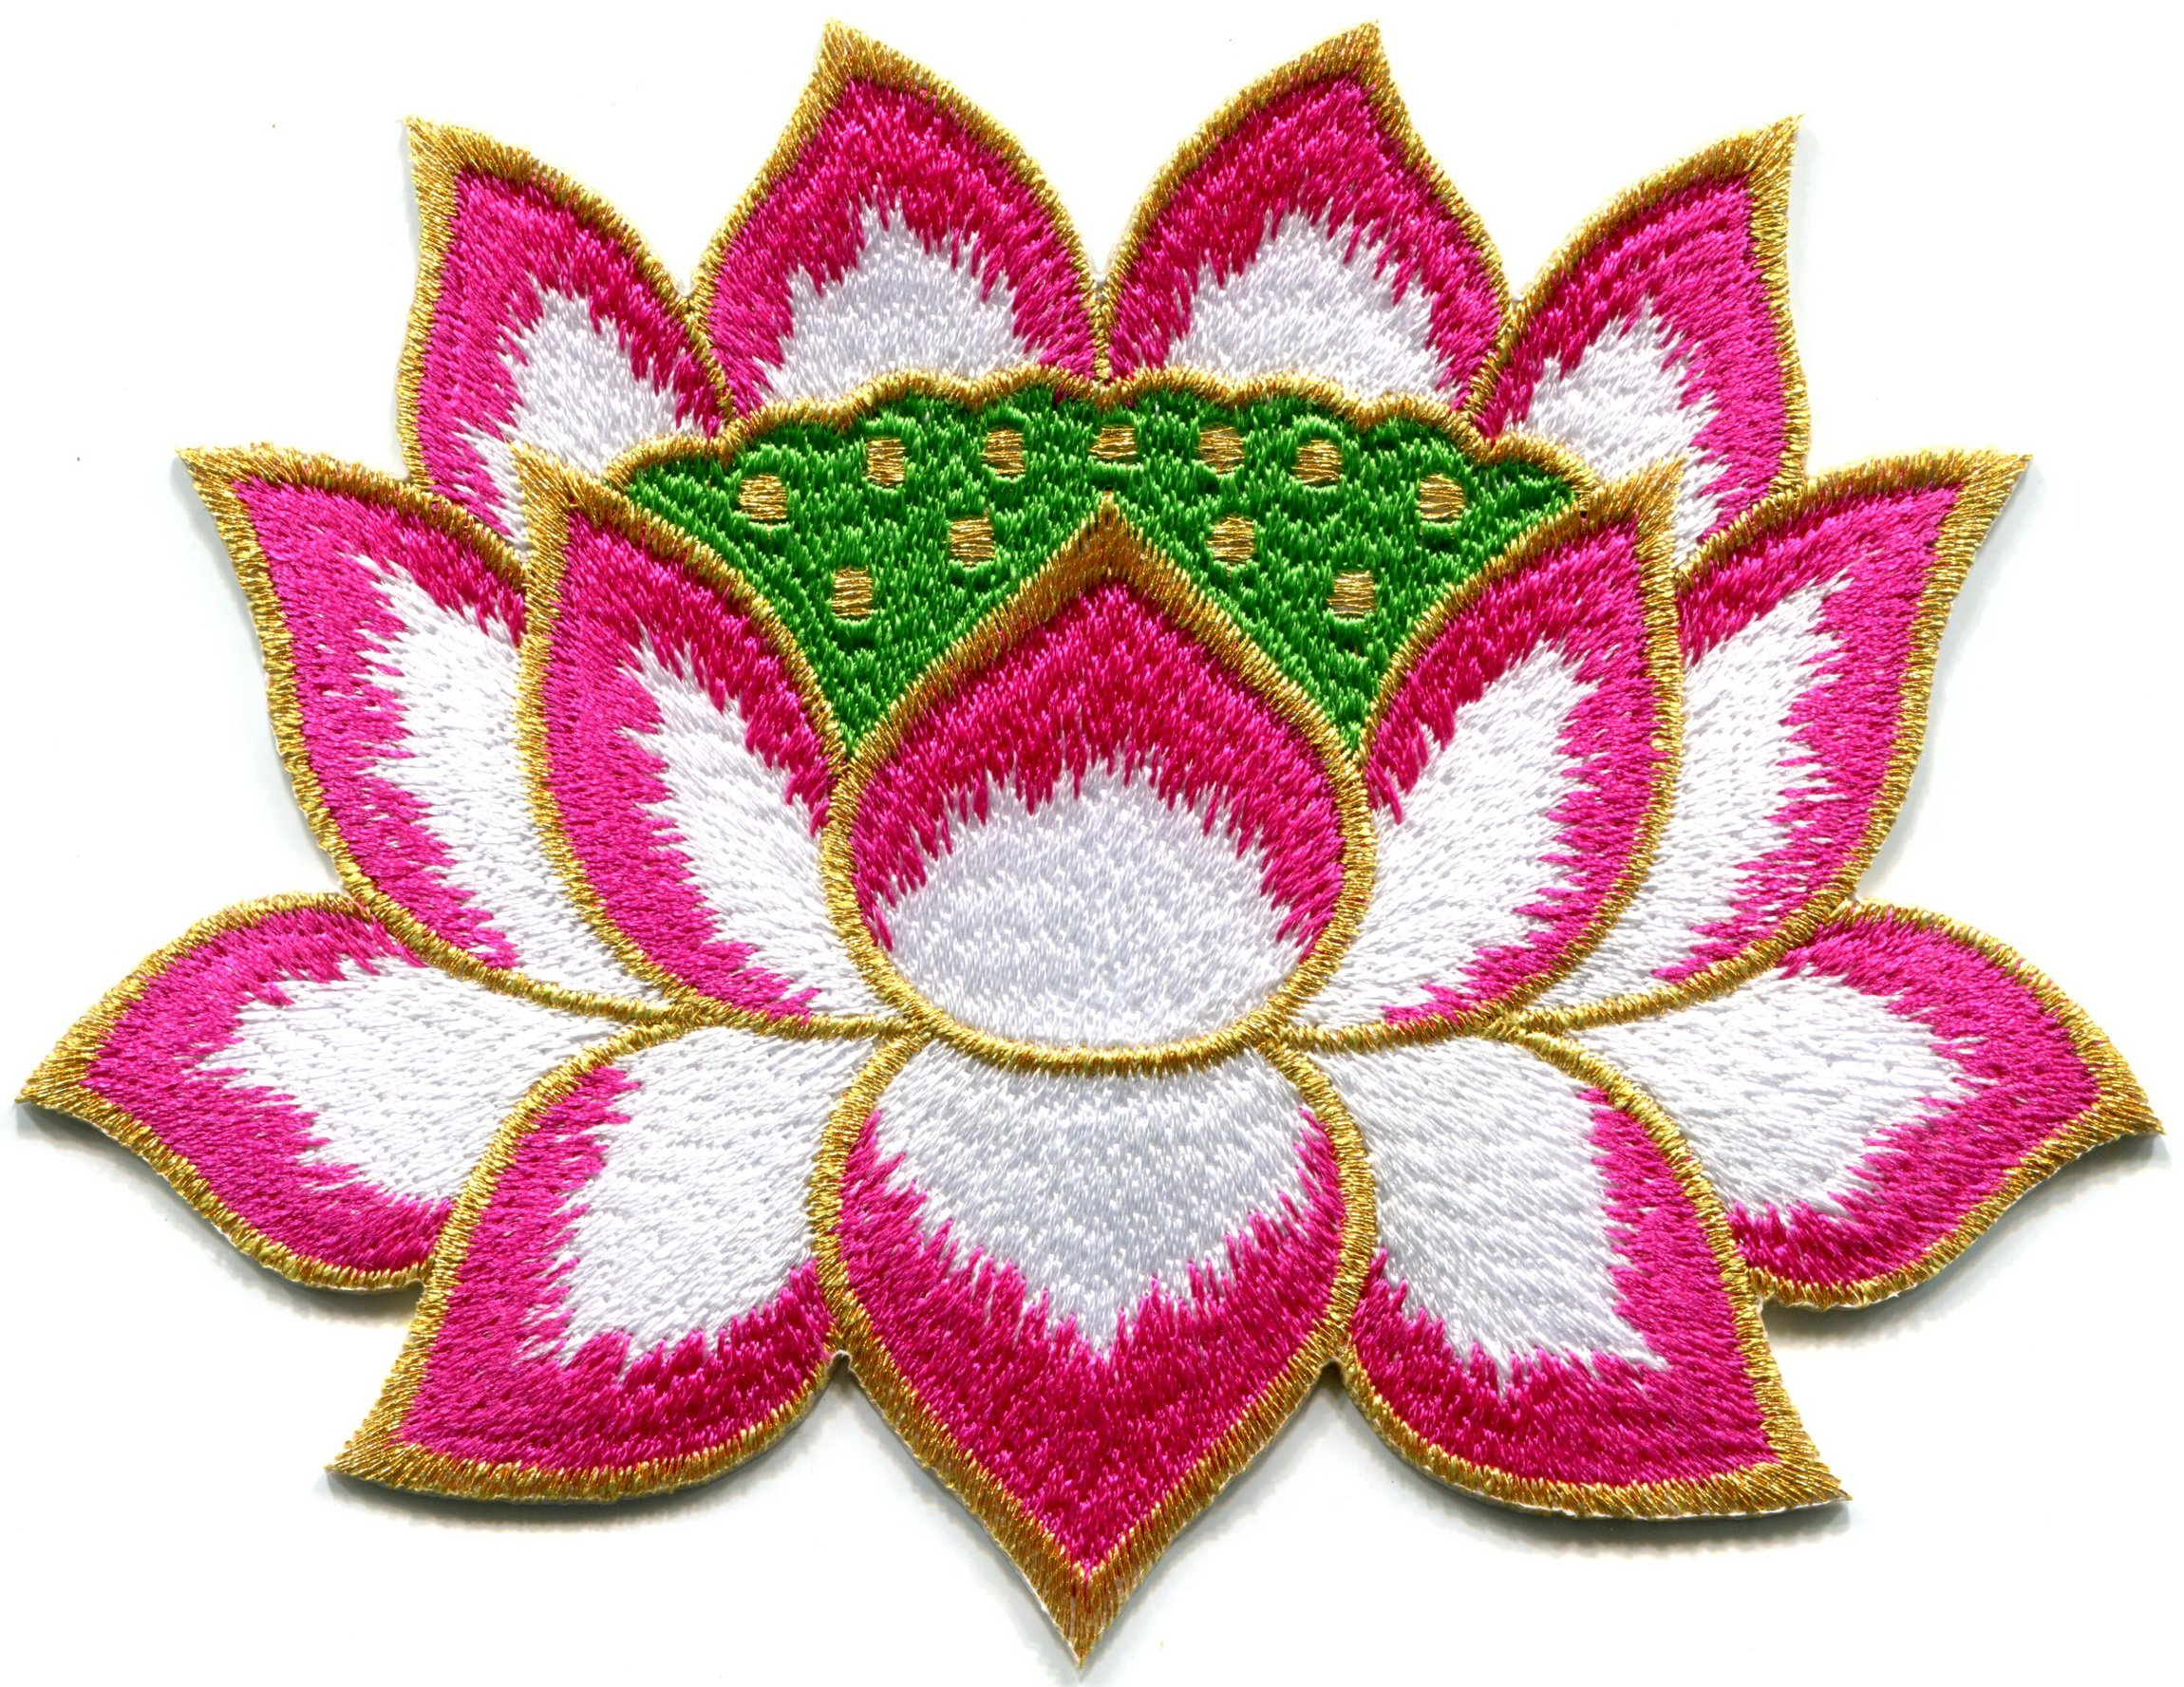 Lotus Flower Buddhism Guanyin Pink with Gold Trim Embroidered Applique Iron-on Patch S-1246